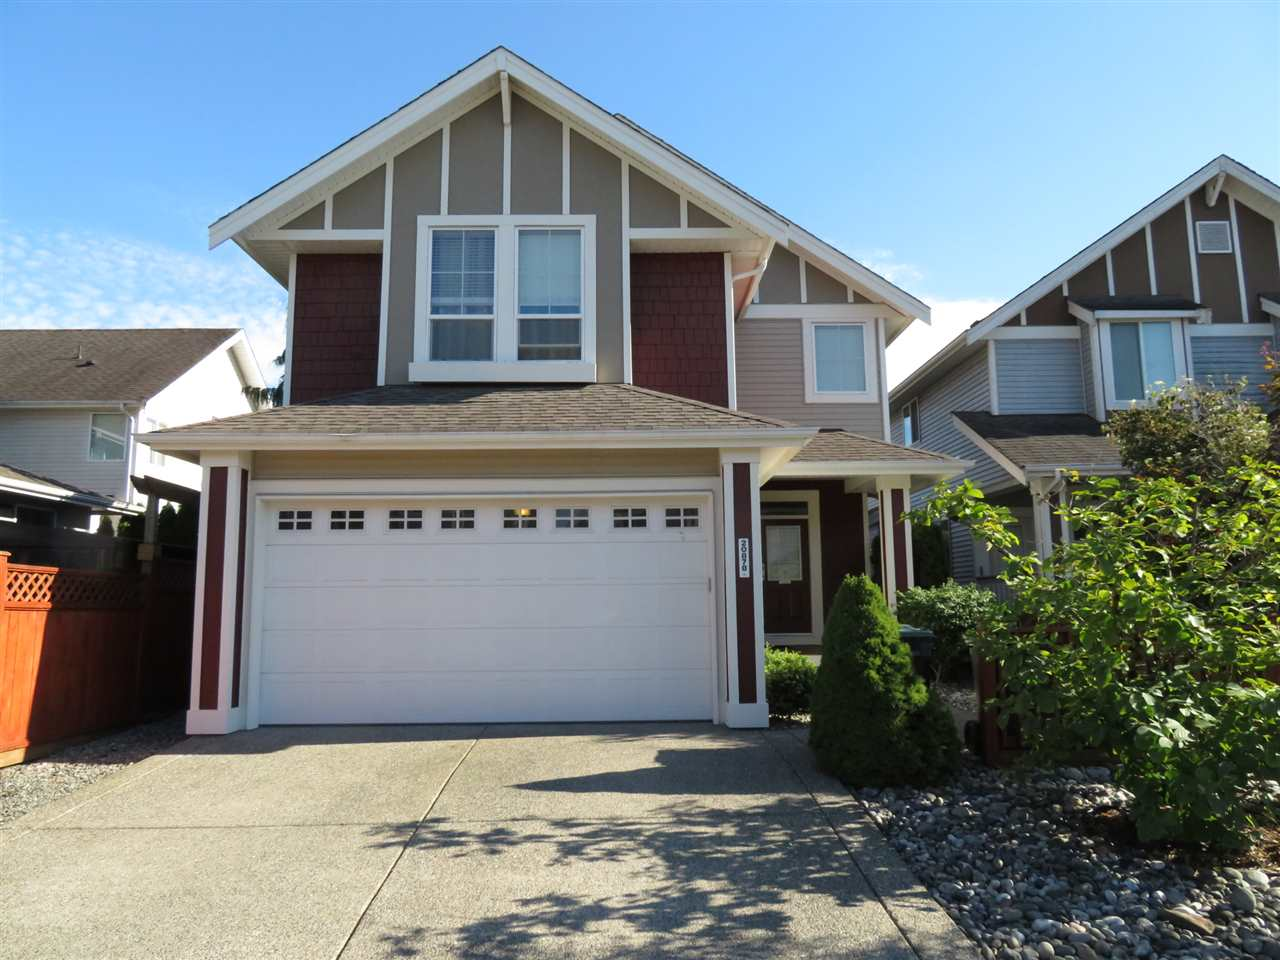 "Photo 1: Photos: 20878 84A Avenue in Langley: Willoughby Heights House for sale in ""Yorkson Village"" : MLS® # R2212470"